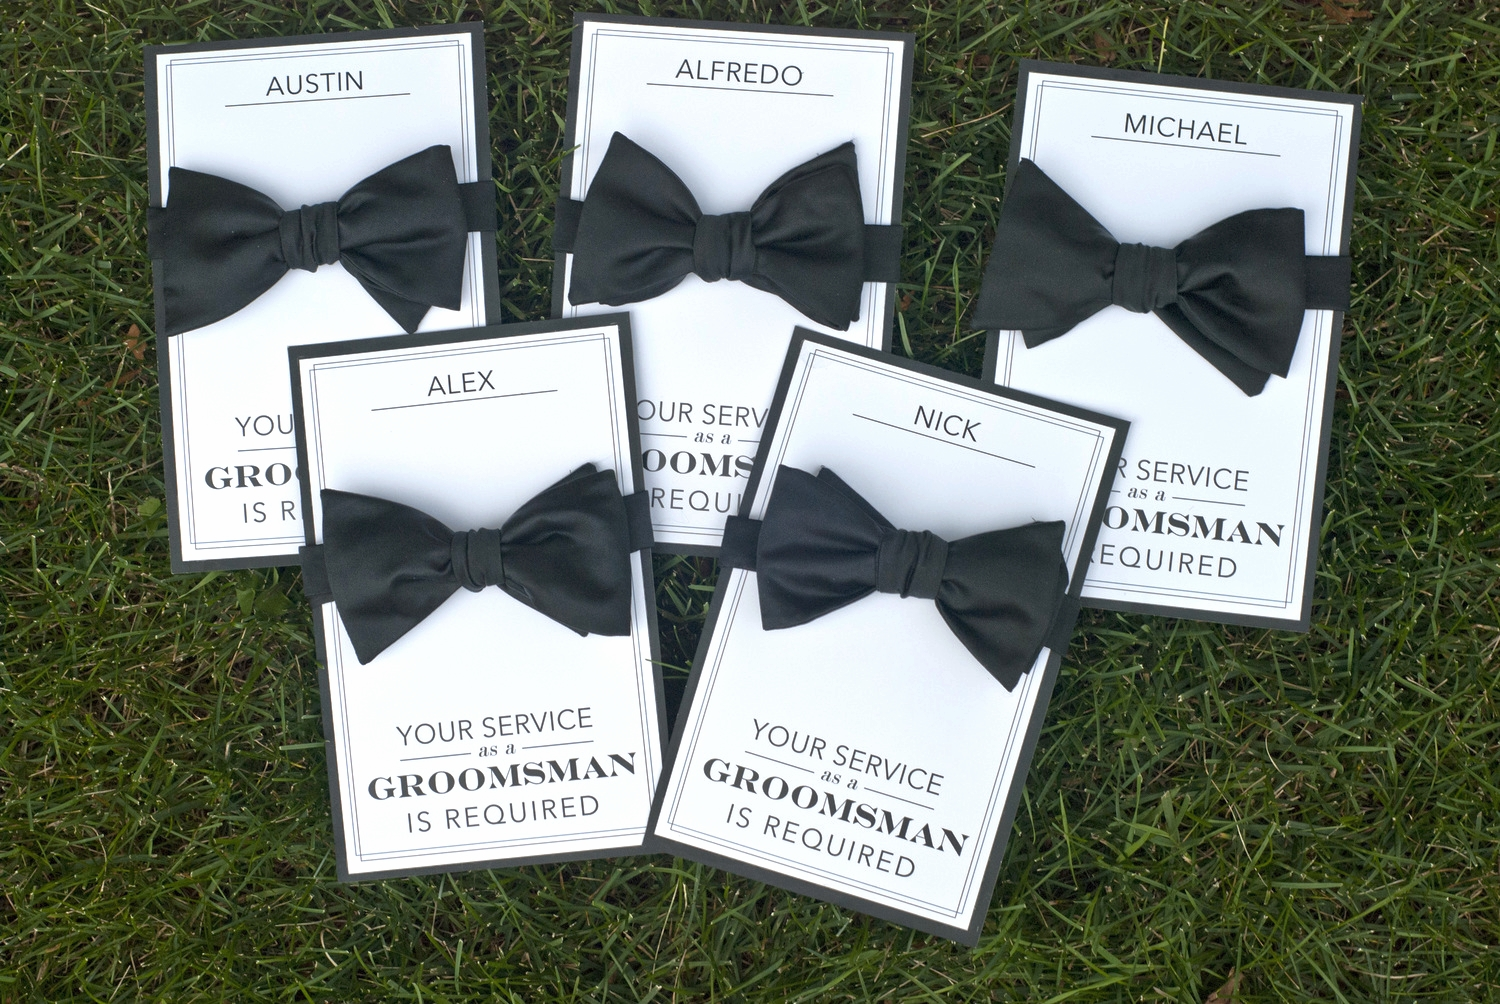 your-service-as-a-groomsman-is-required.jpg